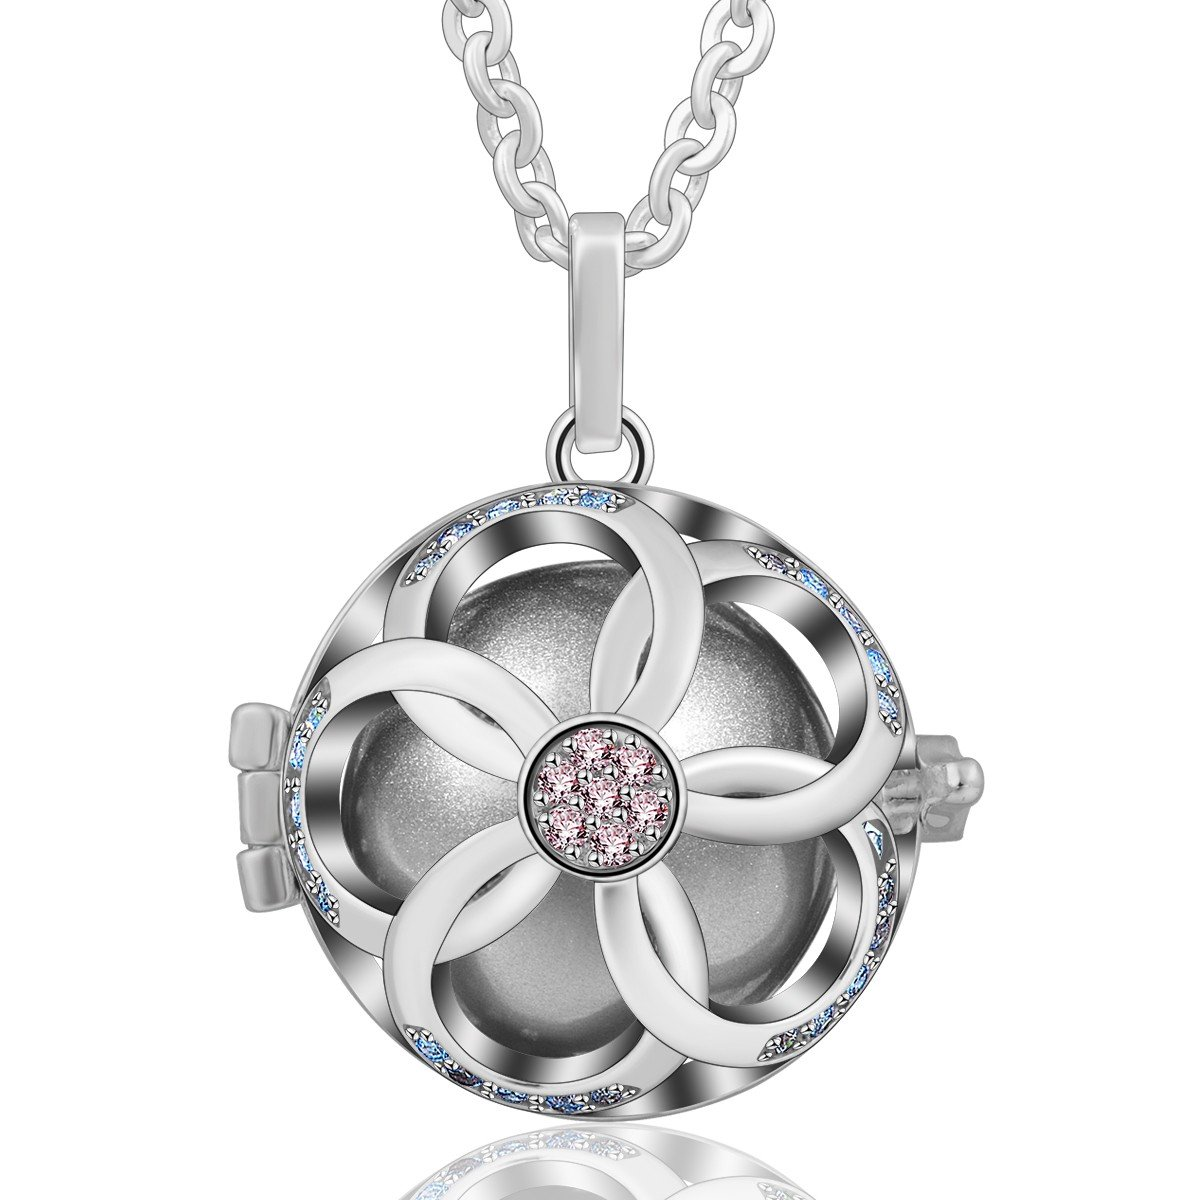 EUDORA Harmony Bola Necklace Apple Flower Music Chime Pendant Pregnancy Wishing Ball, 30'' Chain Gray